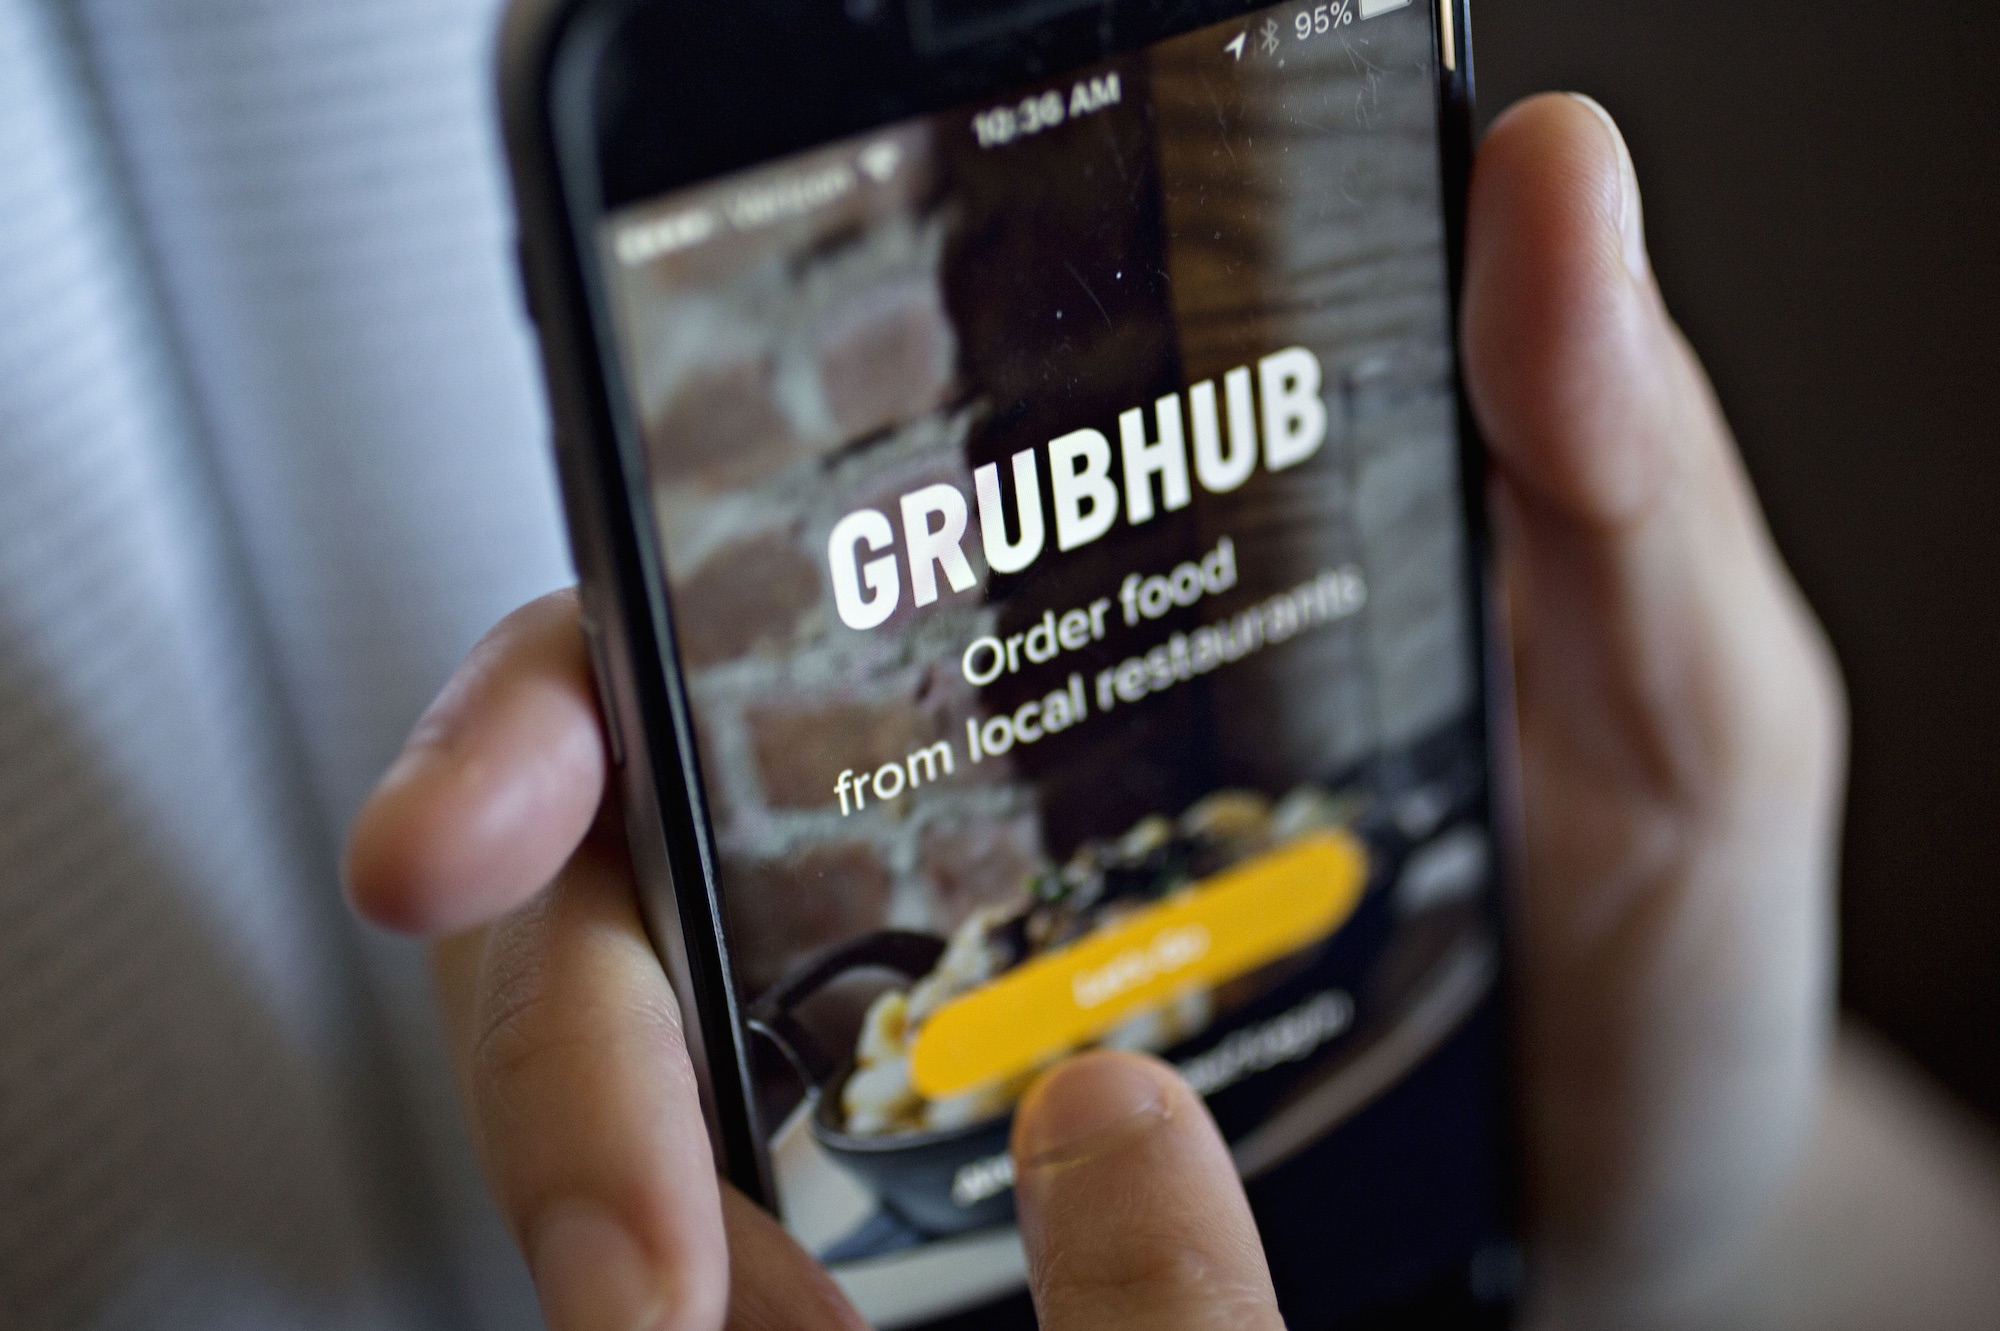 Watch While Eat24 may have a larger market share of deliveries than Uber, it still lags behind on consumer awareness. 12 of customers have heard of UberEats compared to Eat24s 10 or Postmates 7. And that harkens back to the threat Morgan Stanley identified early: Uber and Amazon must be watched given their brand loyalty video